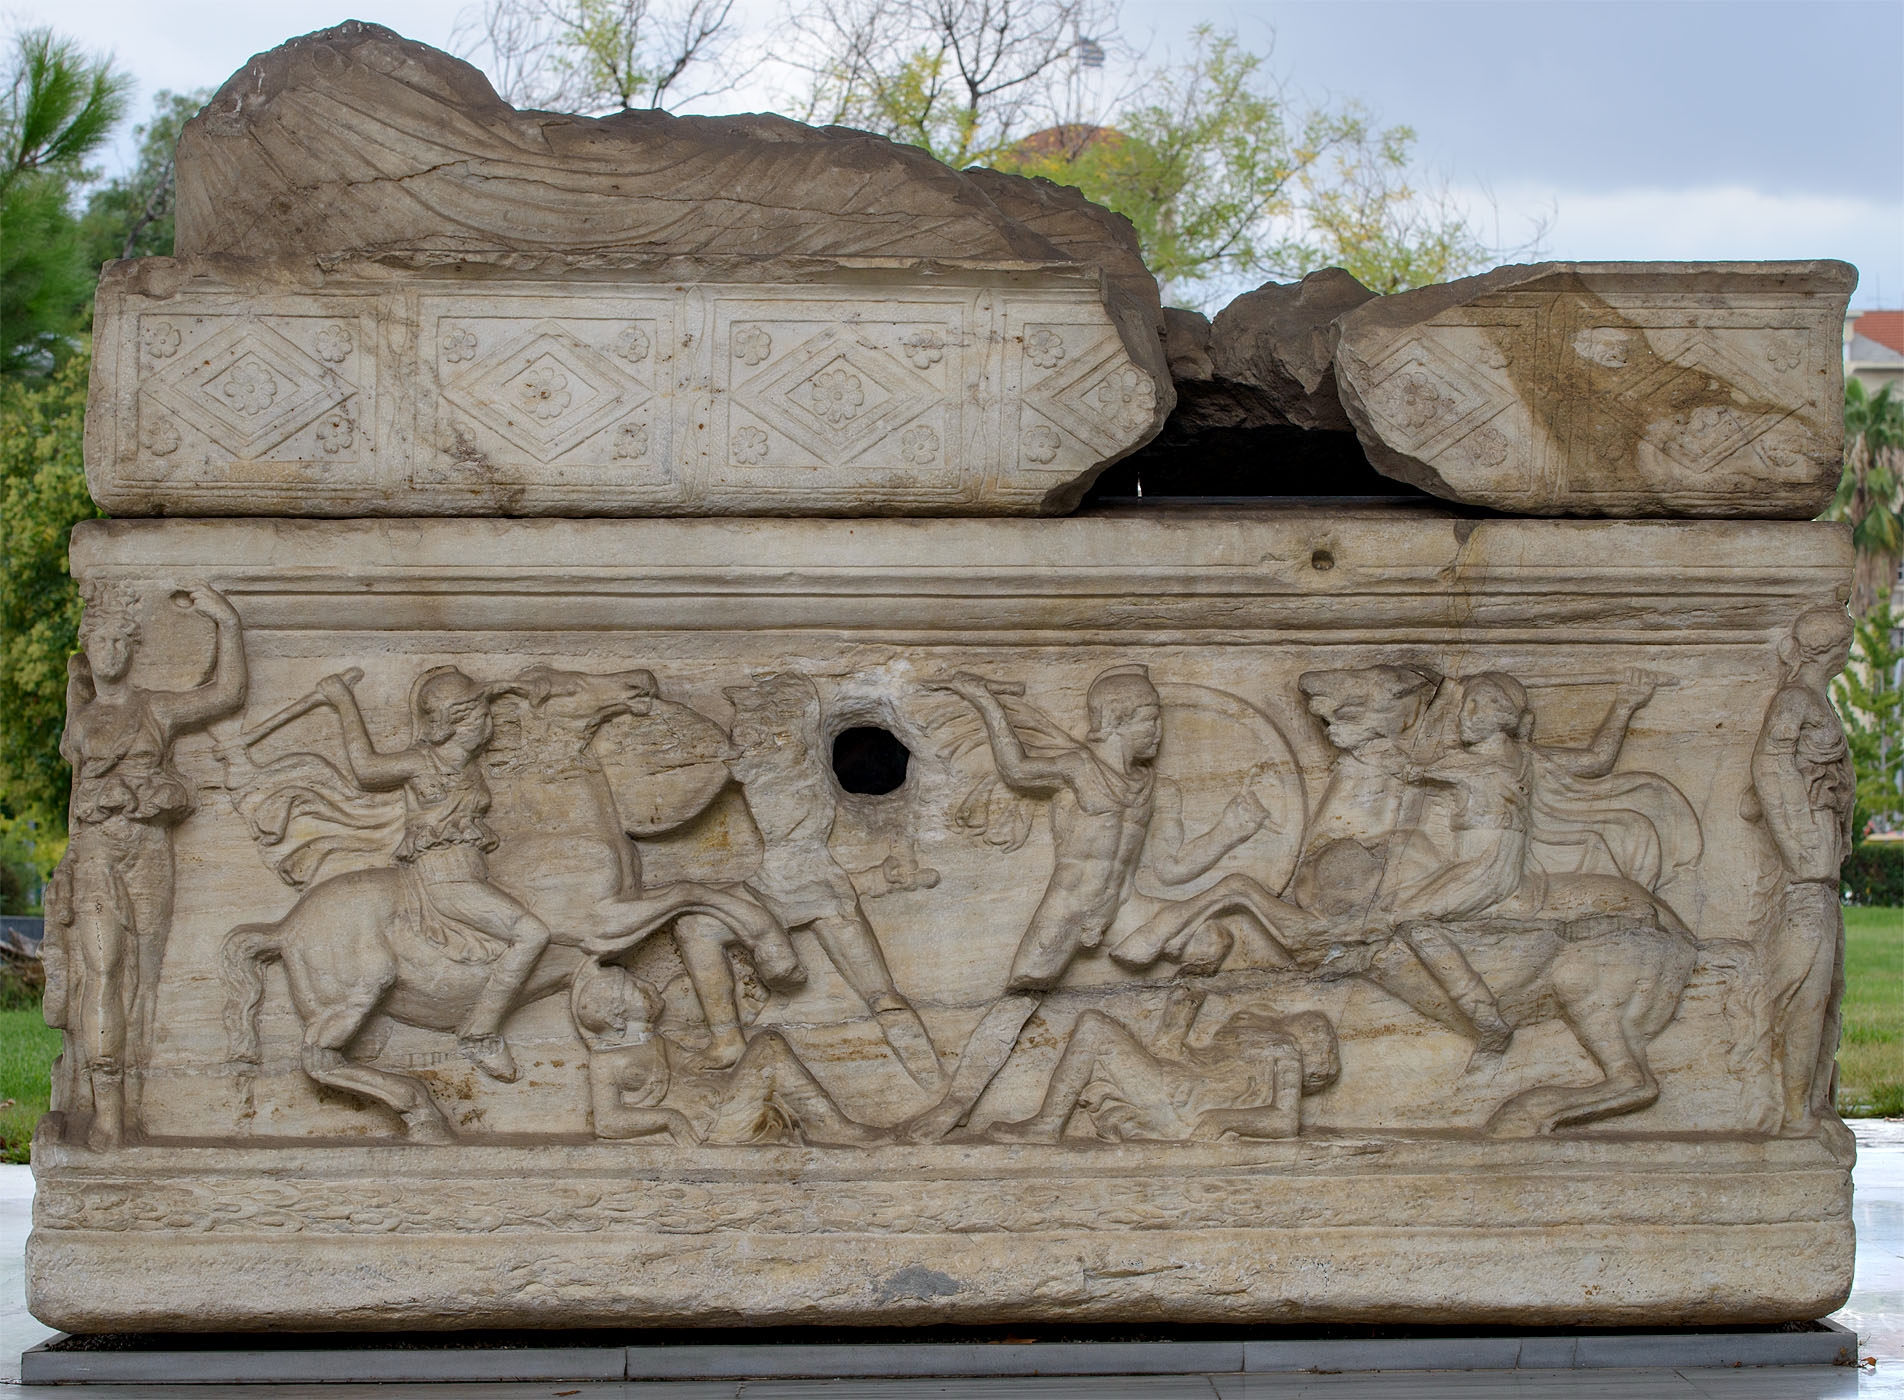 Attic sarcophagus with scenes of battles between the Greeks and the Amazons (the rear panel). Marble. 220—230 CE. Thessaloniki, Archaeological Museum